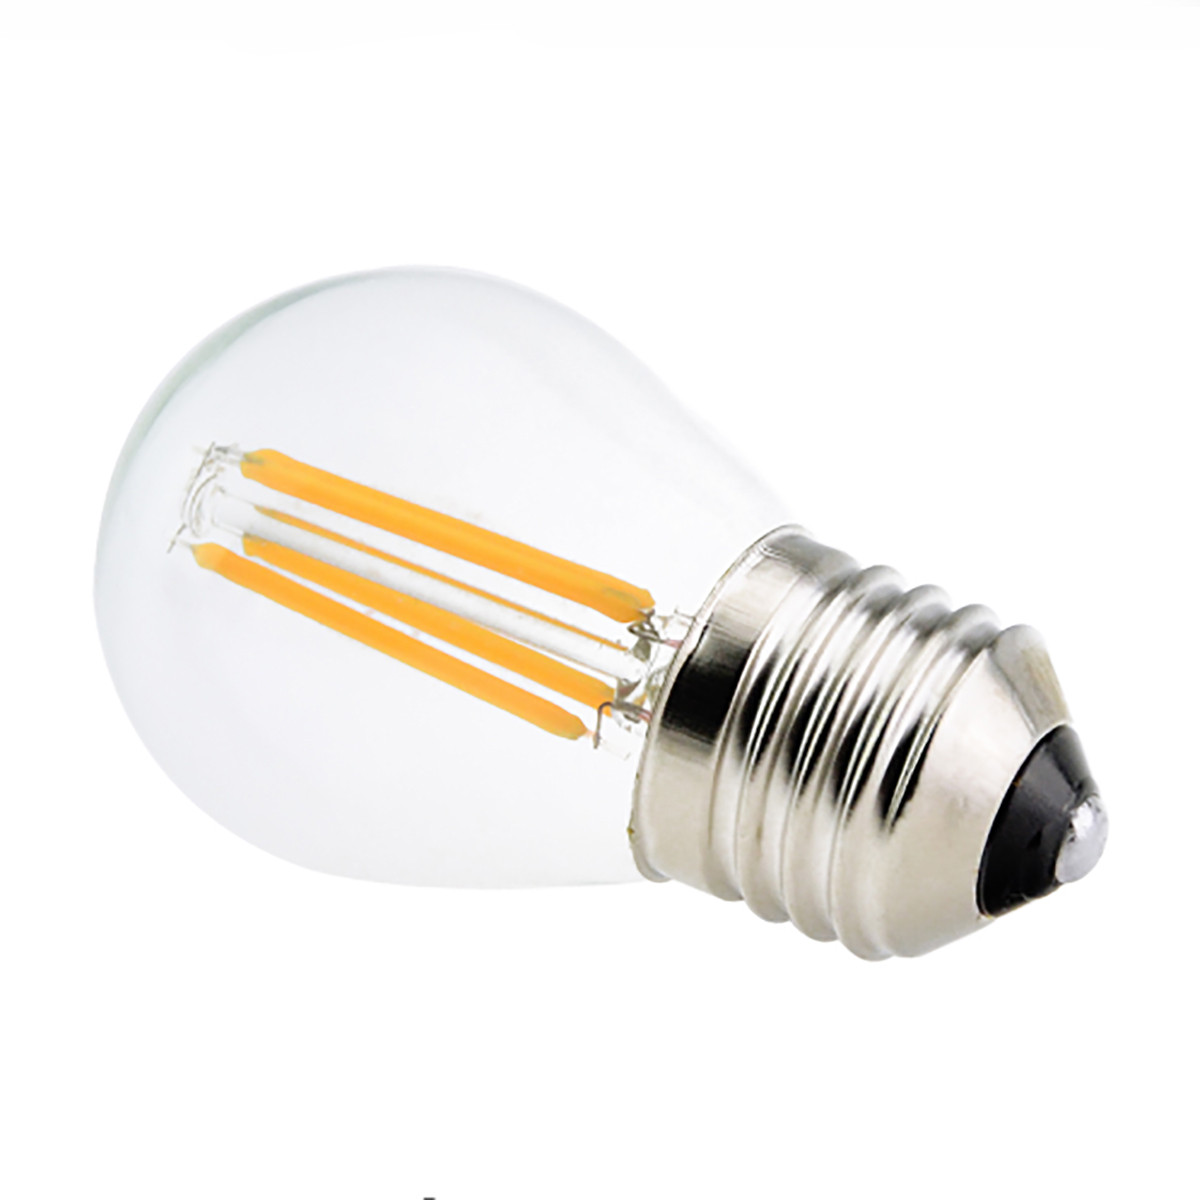 4W Filament LED Globe Light Bulb Light G45 Chandelier Bulb with E26 Base 40W Equivalent Halogen Replacement